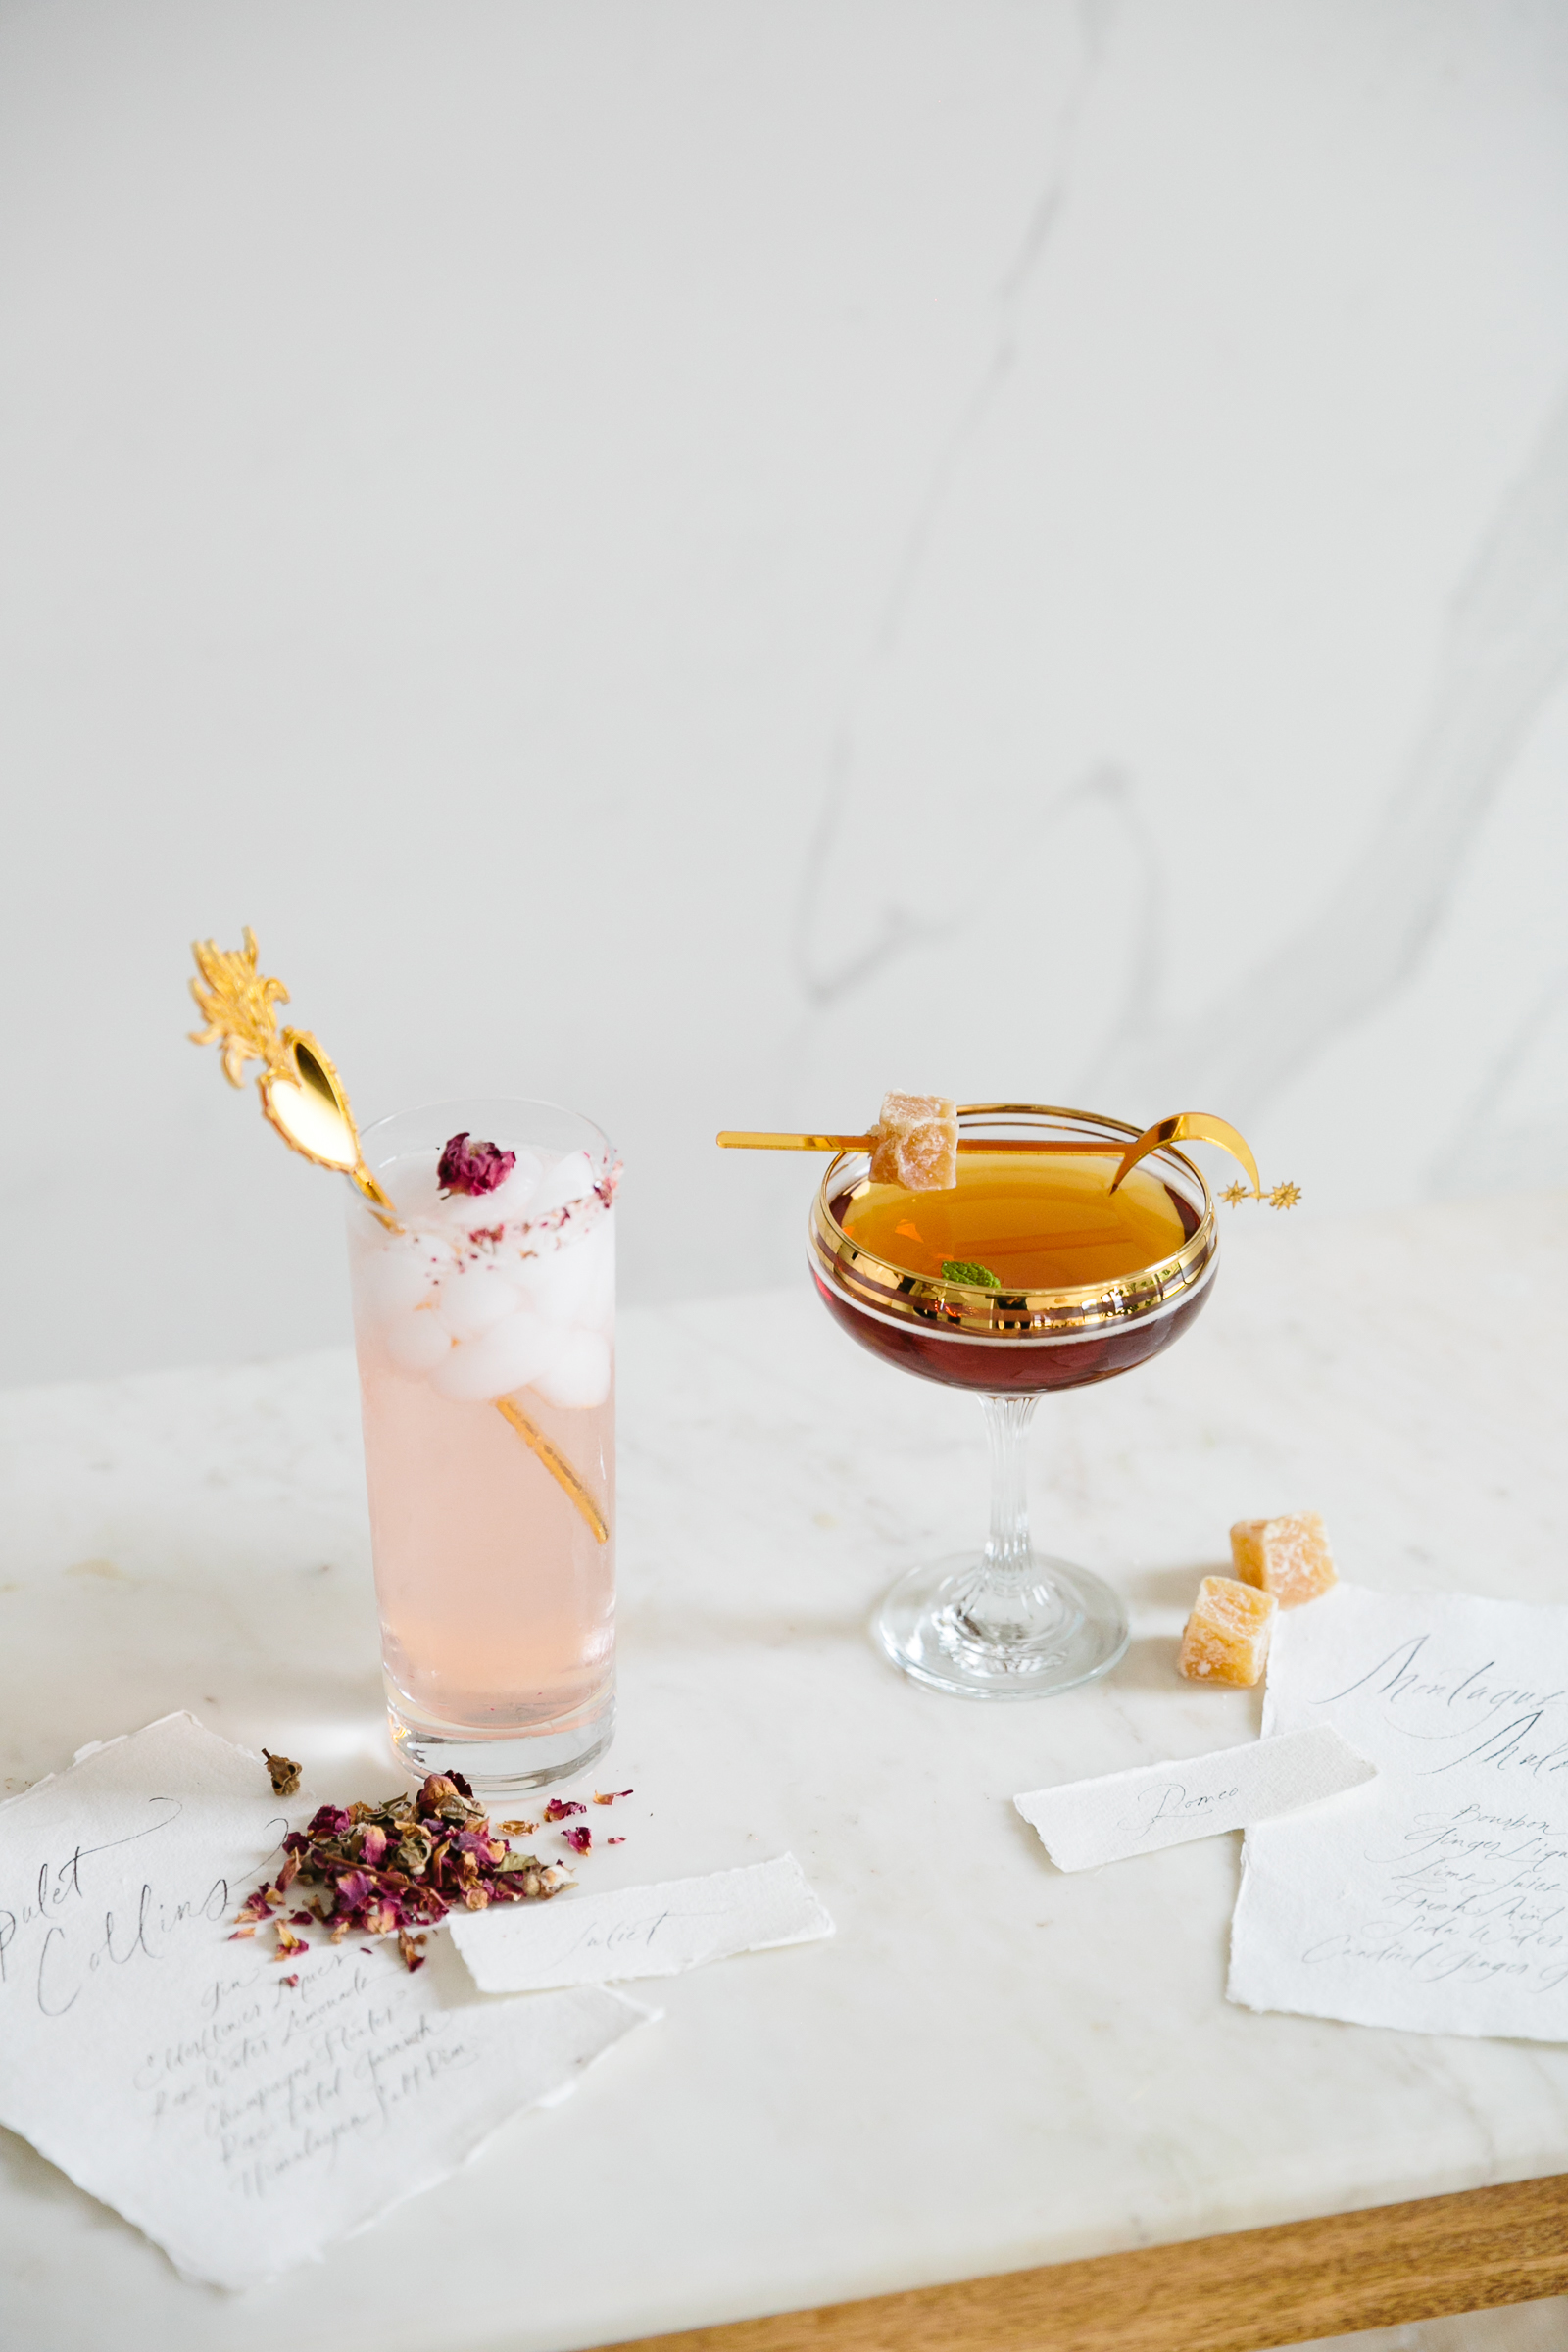 romeo and juliet valentines day party cocktails with gold star stir sticks